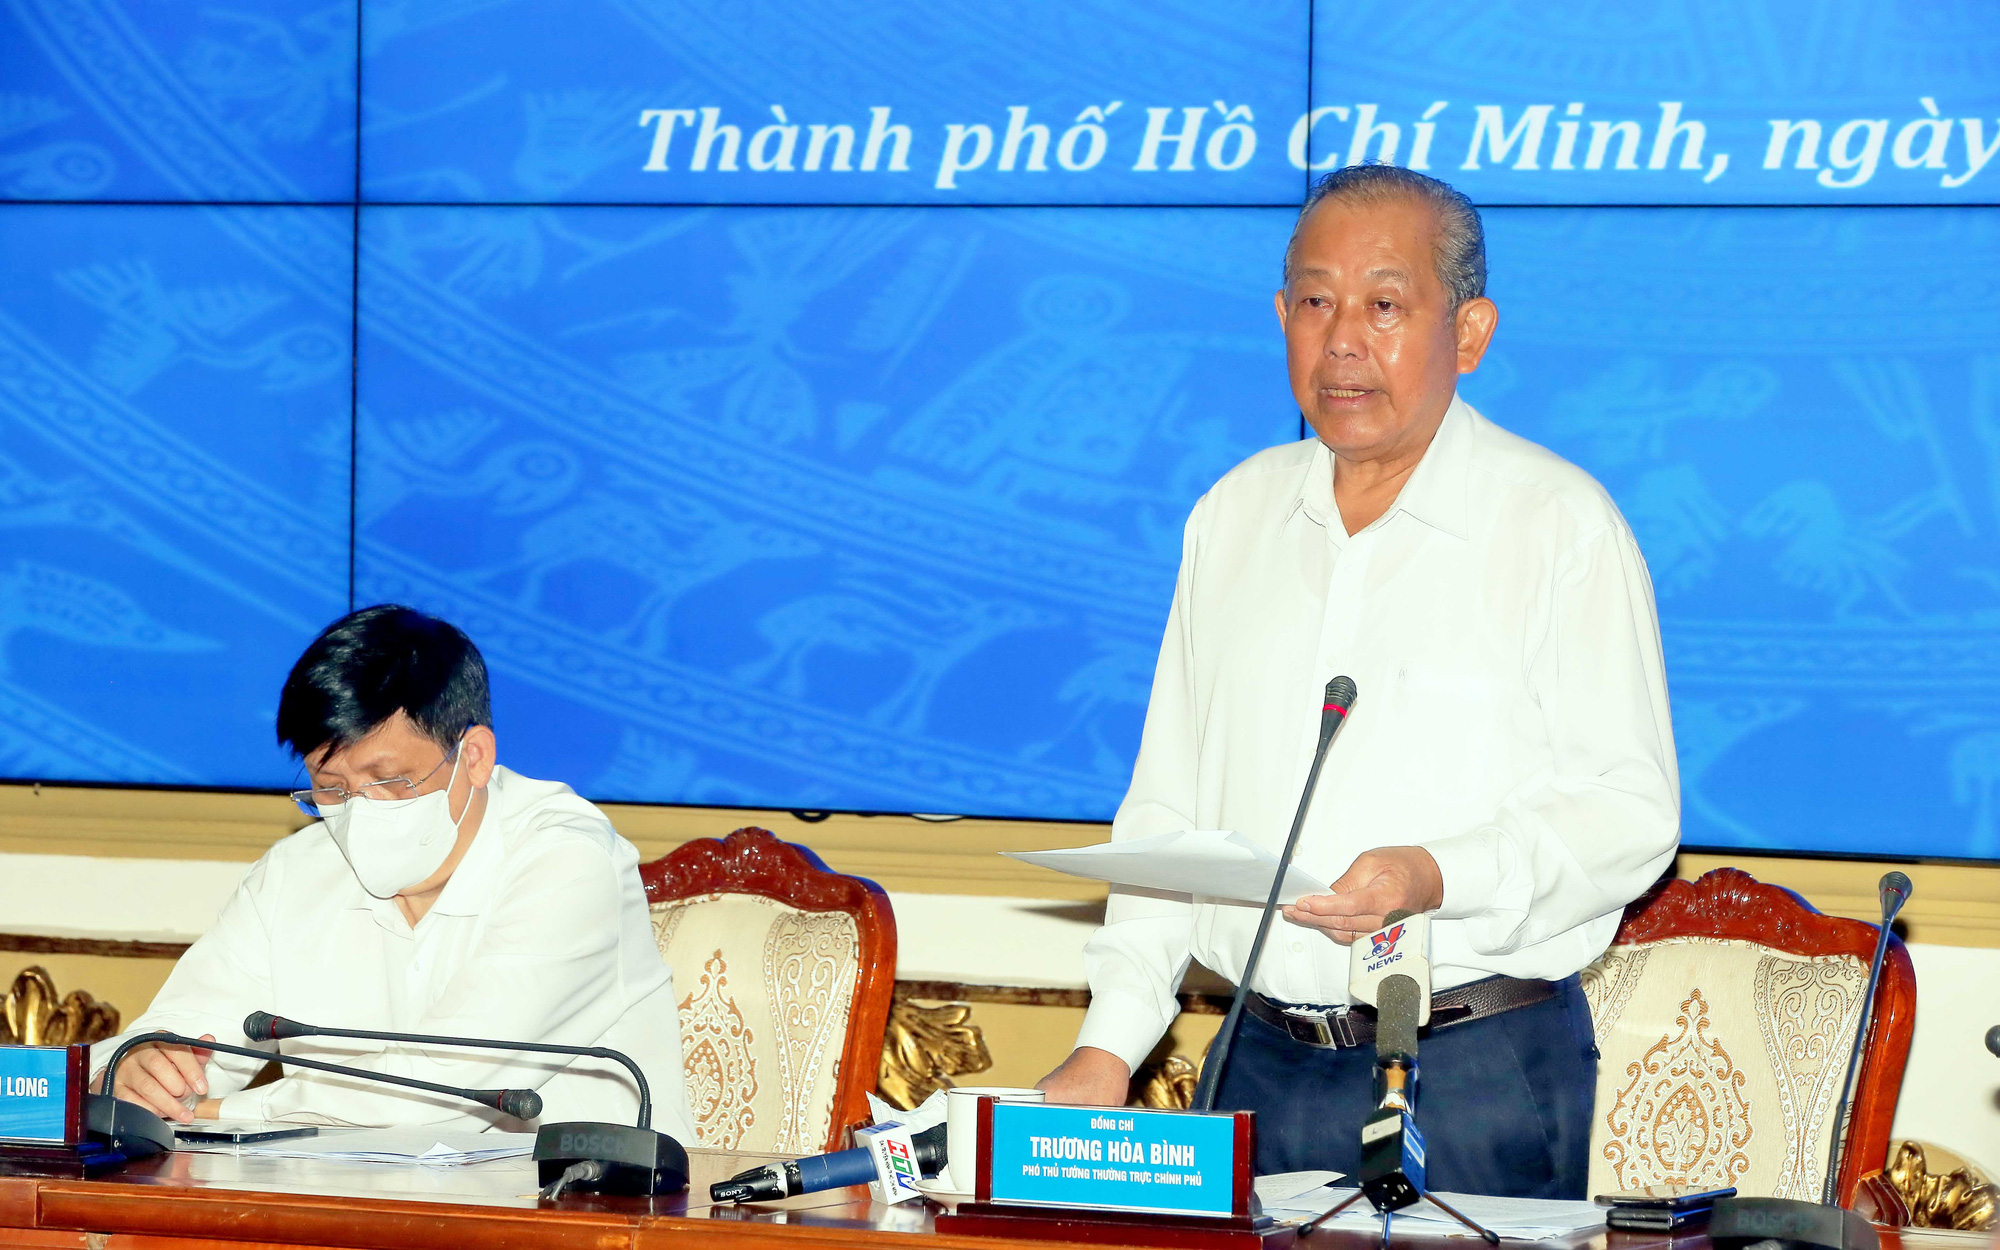 Ho Chi Minh City must activate COVID-19 prevention system at highest level: health minister